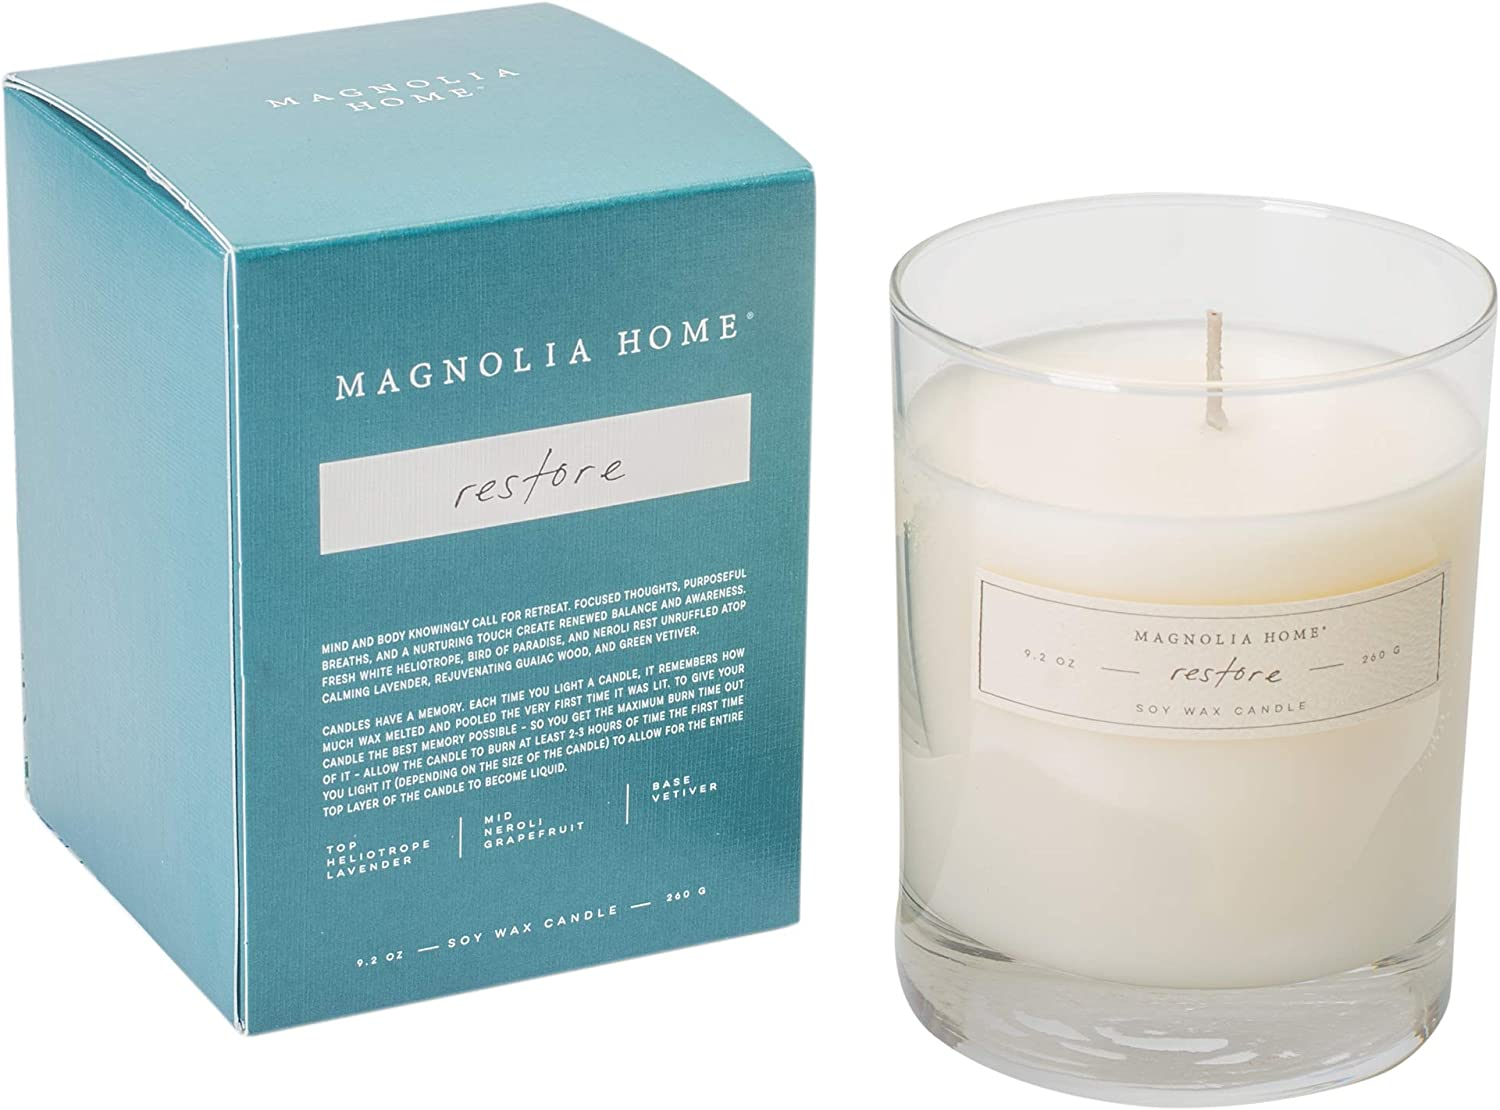 Restore Scented 9.2 ounce Soy Wax Boxed Glass Candle by Joanna Gaines - Illume